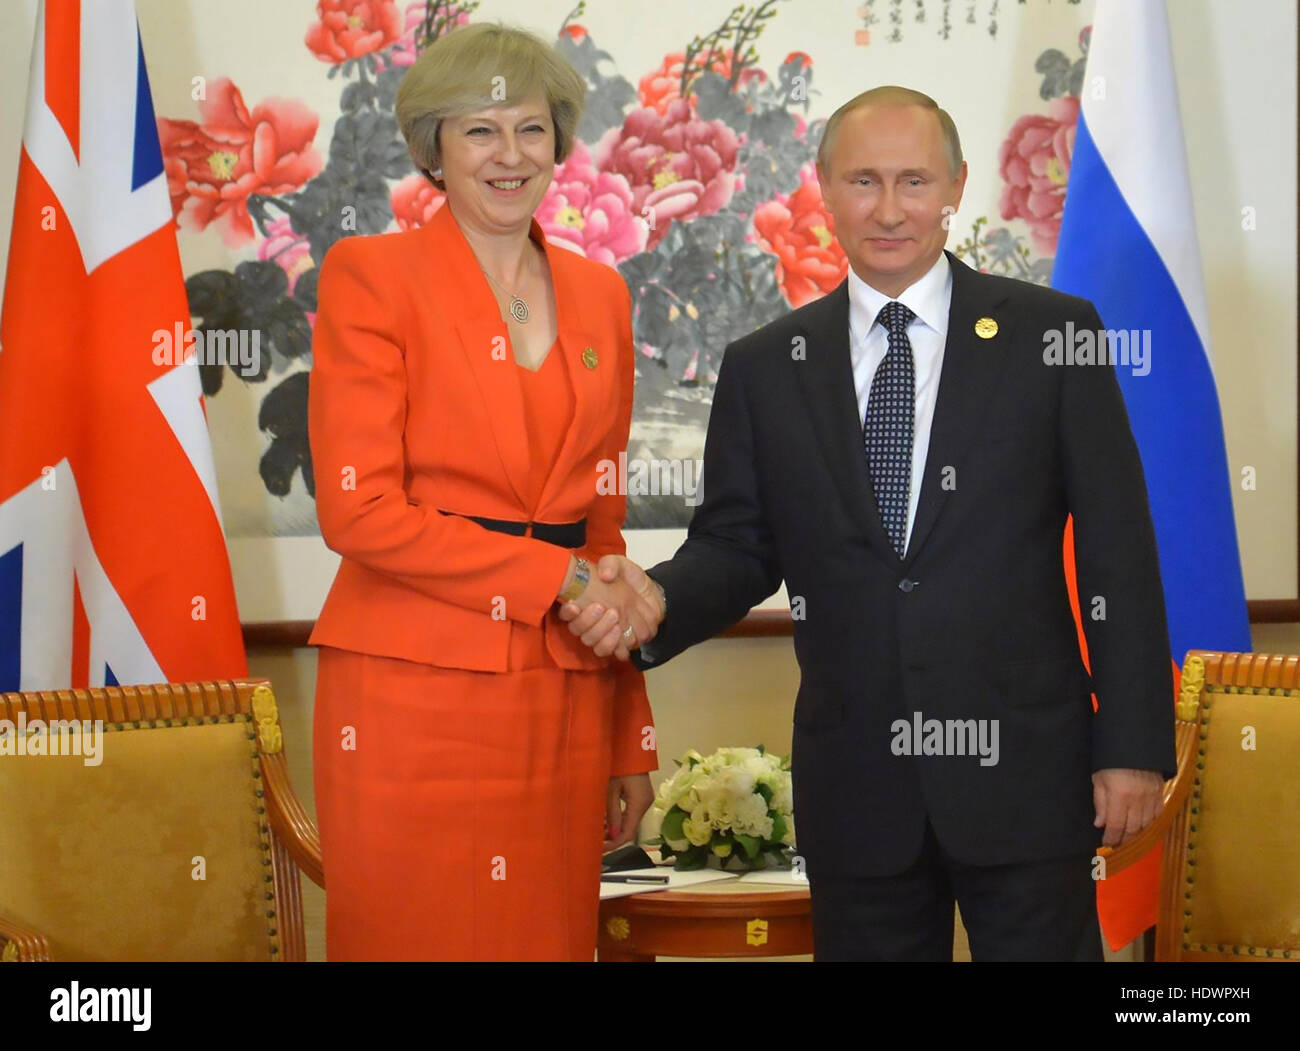 THERESA MAY, British Prime Minister meets Vladimir Putin,President of the Russian Fderationj, at the G20 Summit - Stock Image